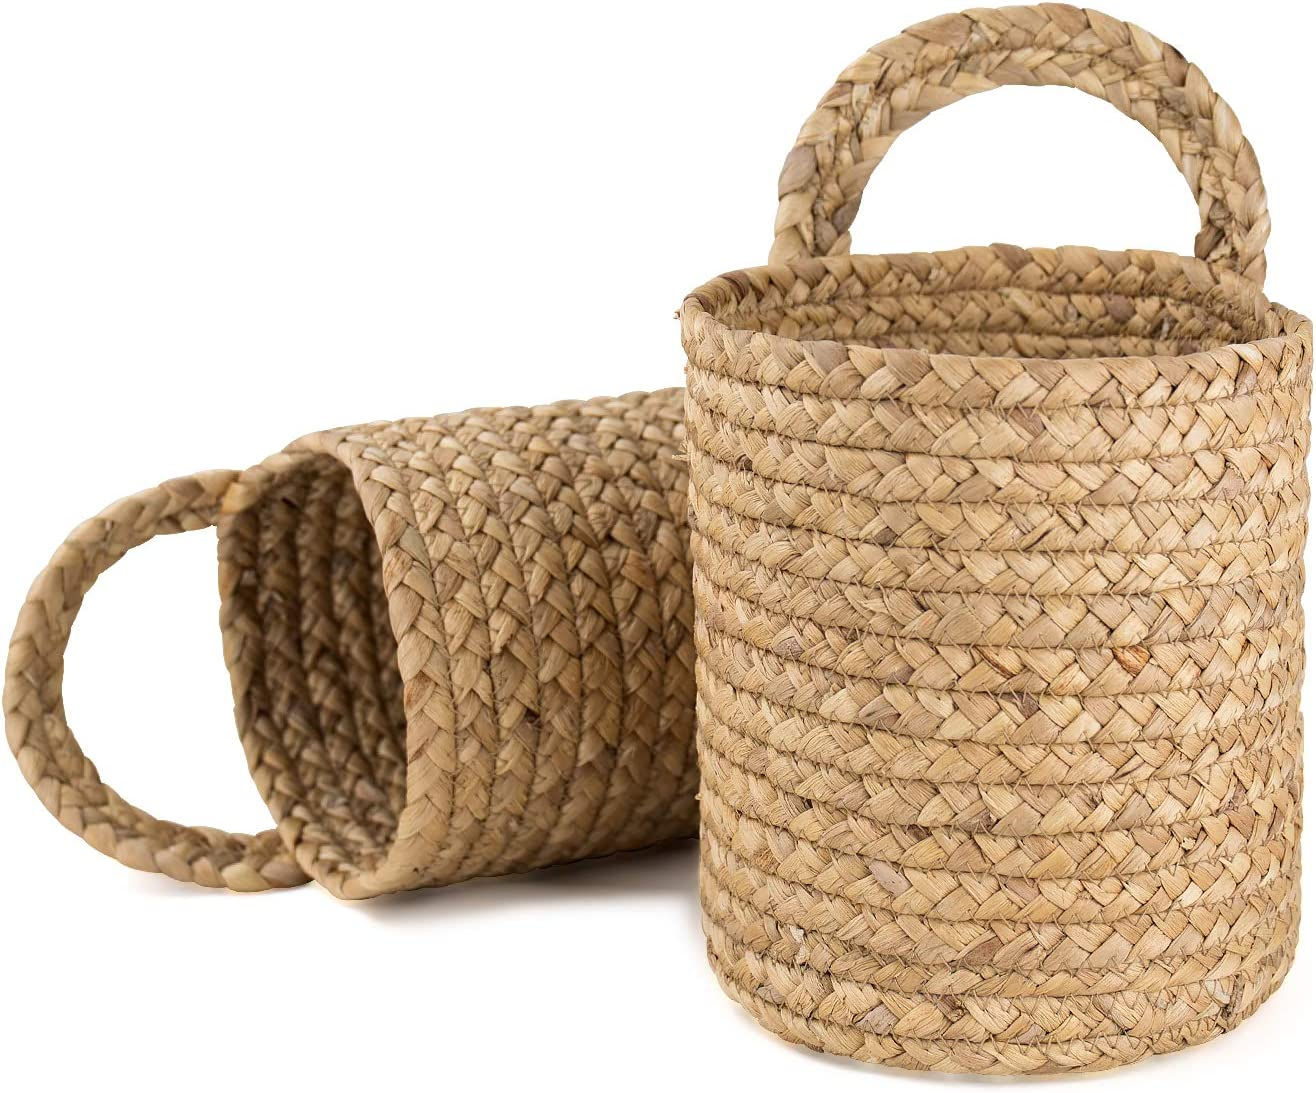 LA JOLIE MUSE Seagrass Woven Storage Baskets Set of 2, Wall Hanging Baskets Organizer, Garden Plant Baskets